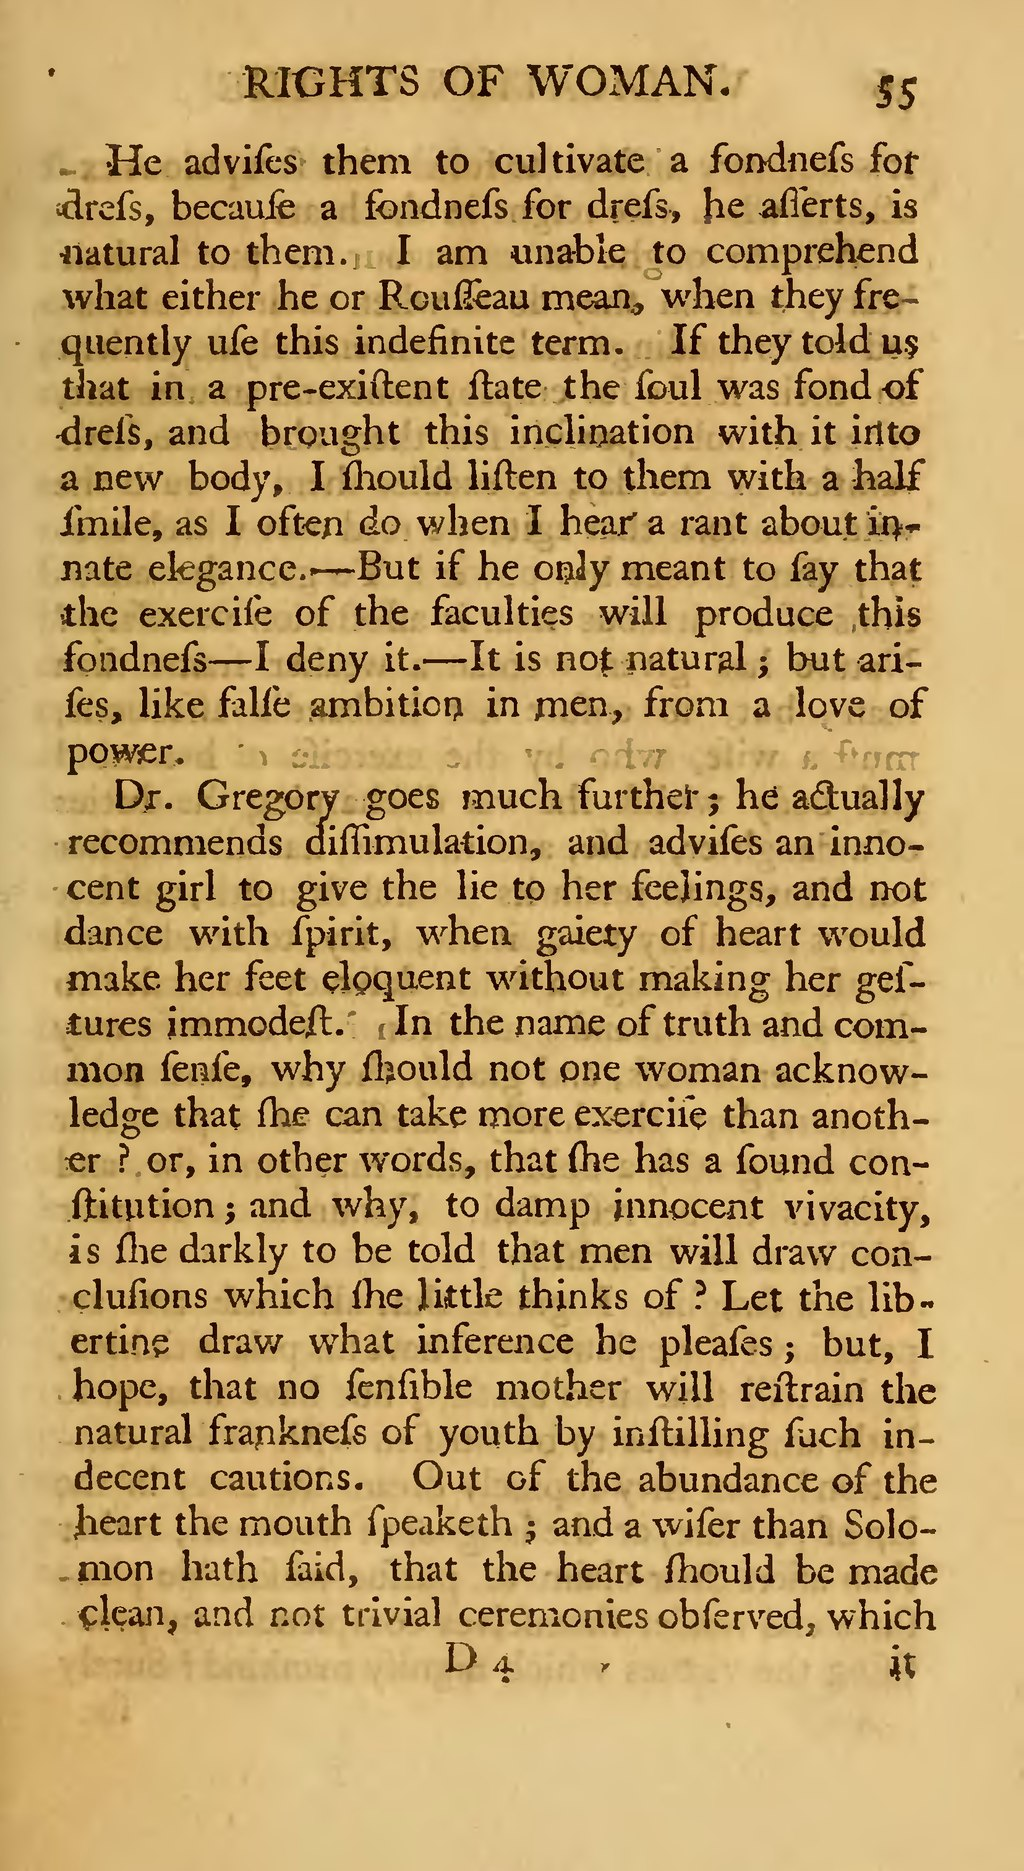 wollstonecraft make women free This paper explores mary wollstonecraft's anti-slavery and feminist views in the vindication of the writes of women: mary wollstonecraft and enlightenment rhetoric, miriam brody applies wollstonecraft's wollstonecraft refutes this claim by encouraging women to break free.